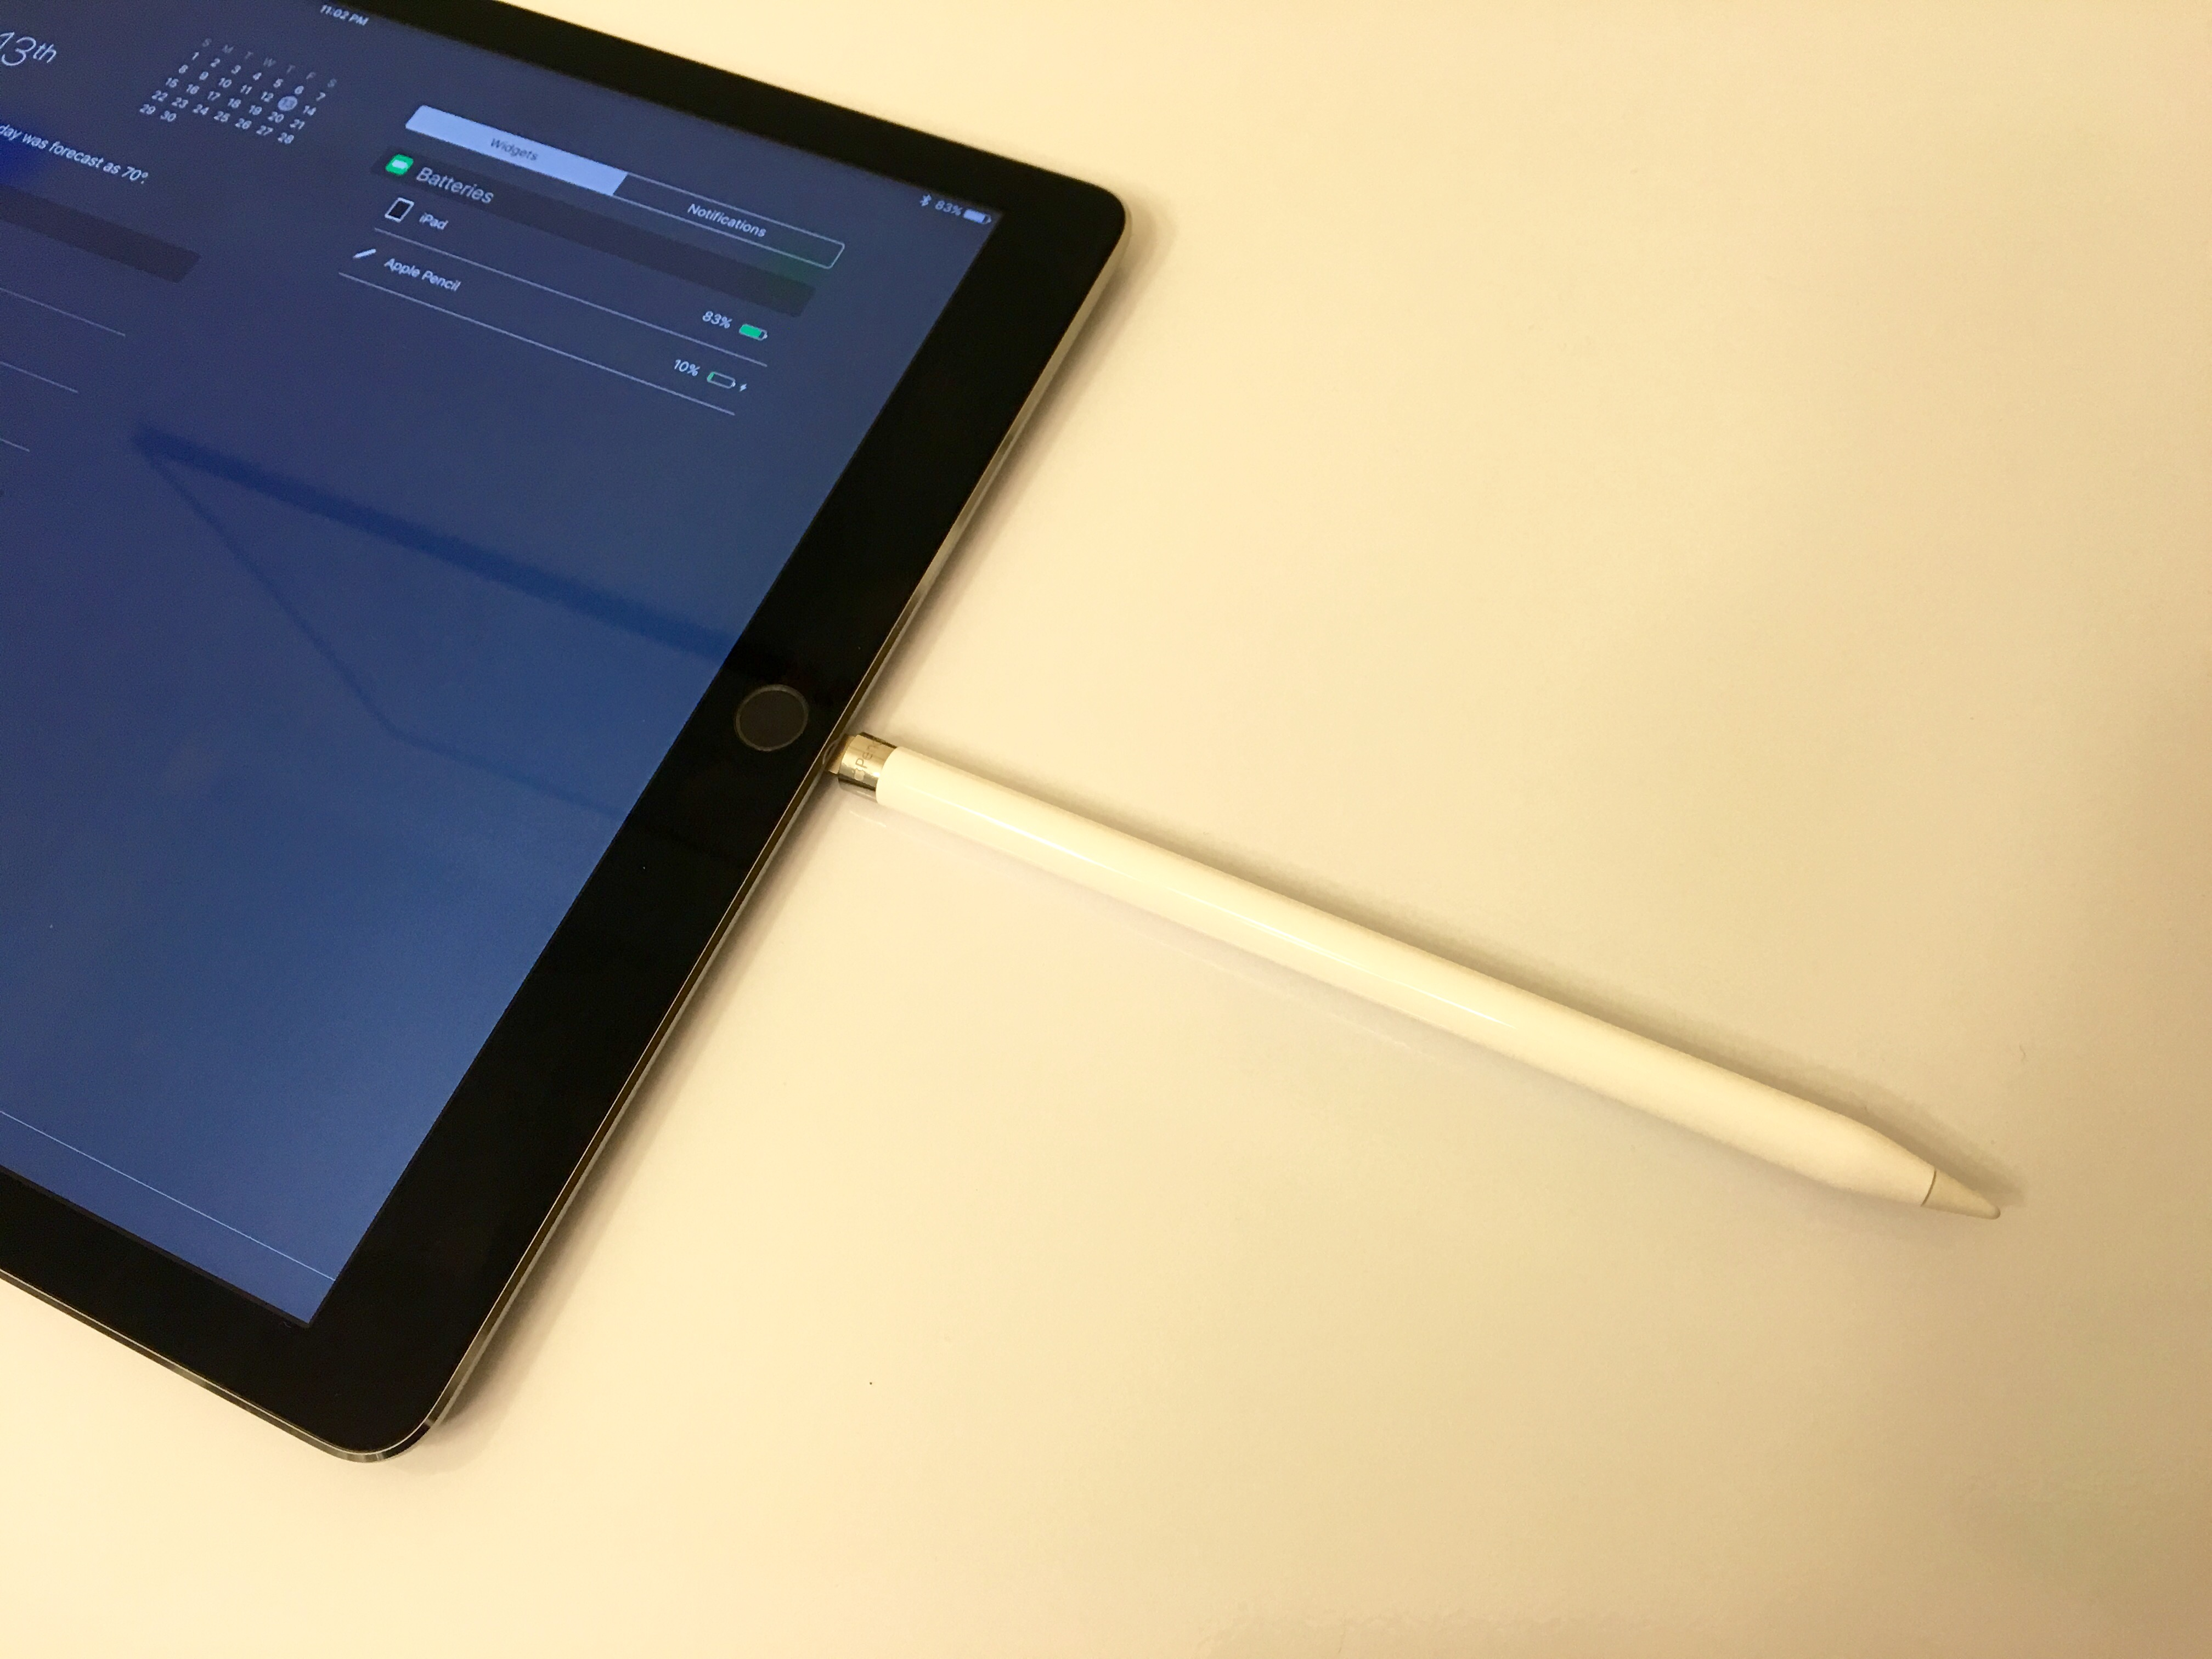 Apple Pencil hands-on 2